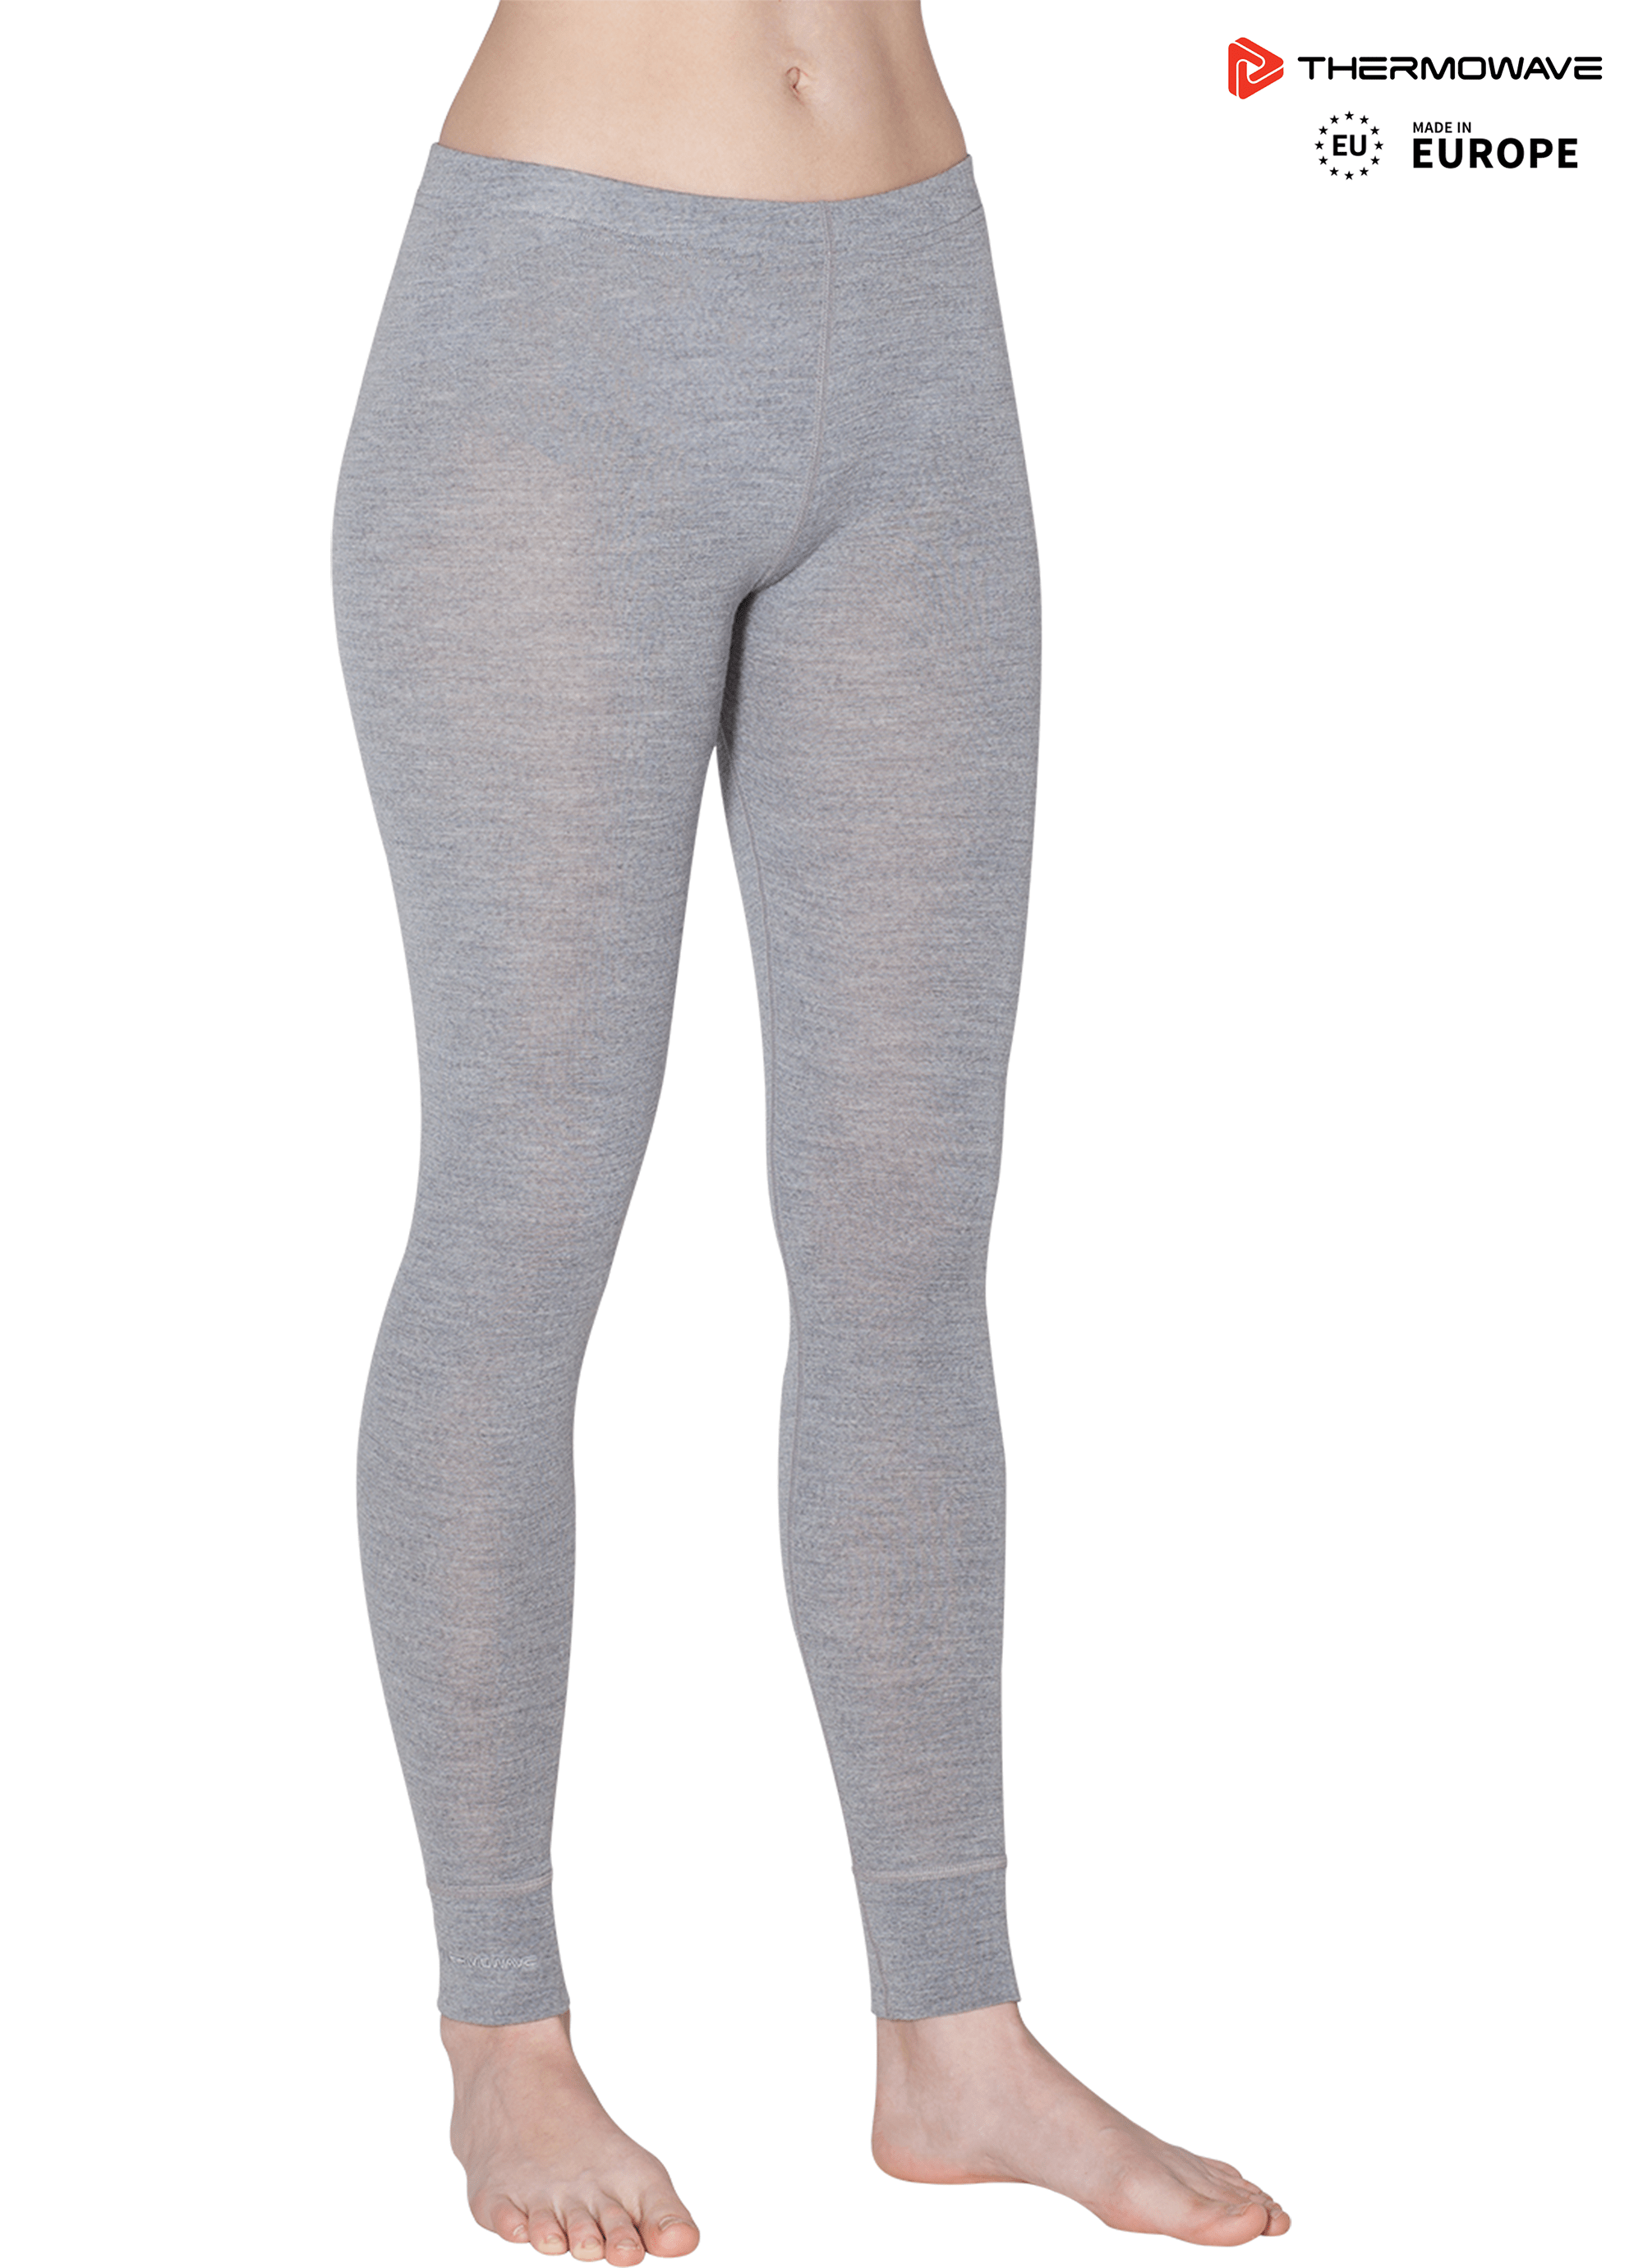 49b321b96fa07 THERMOWAVE – model: Grey MERINO WARM, made in Europe, Womens 100% Merino  Wool Base Layer 180 GSM Pants, Leggings